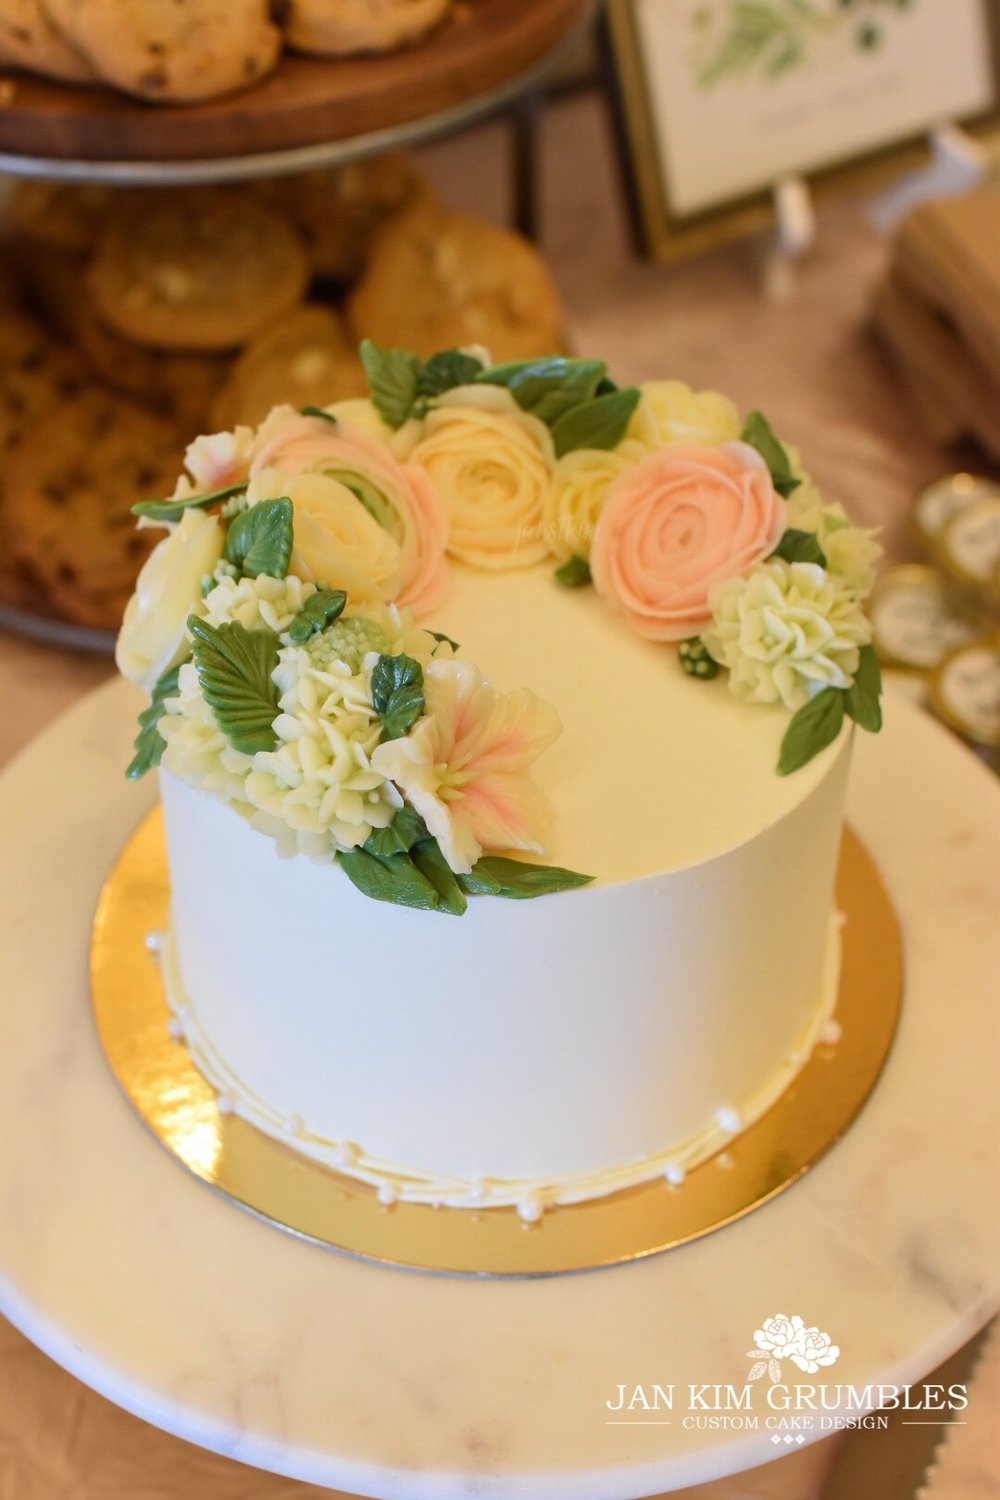 A petite wedding cake and cupcake tier — Jan Kim Grumbles